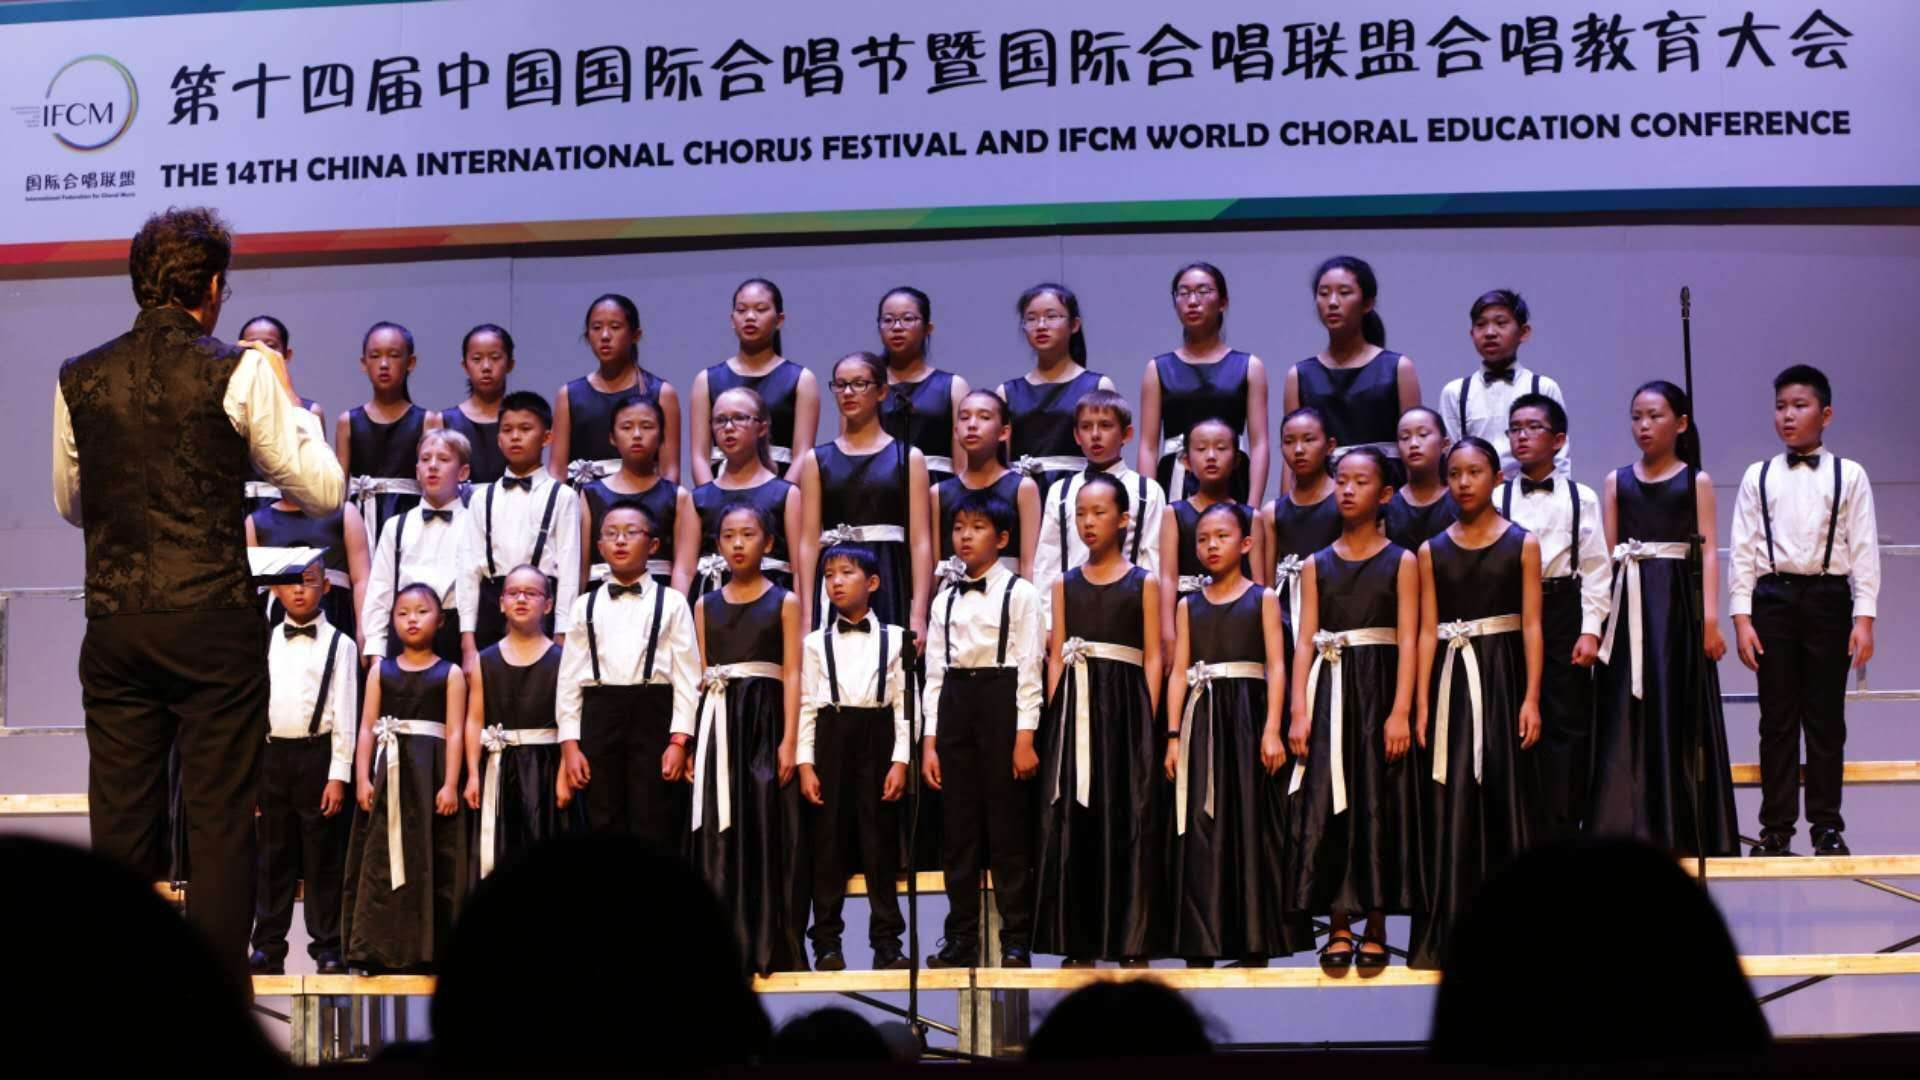 Antonio Llaca directing the Chinese Canadian Children's Choir of Canada (C5) during a performance in the Tianquiao Performing Arts Center in Beijing. The C5 will perform in Havana directed by Llaca in March next year. Photo: Courtesy of the interviewee.